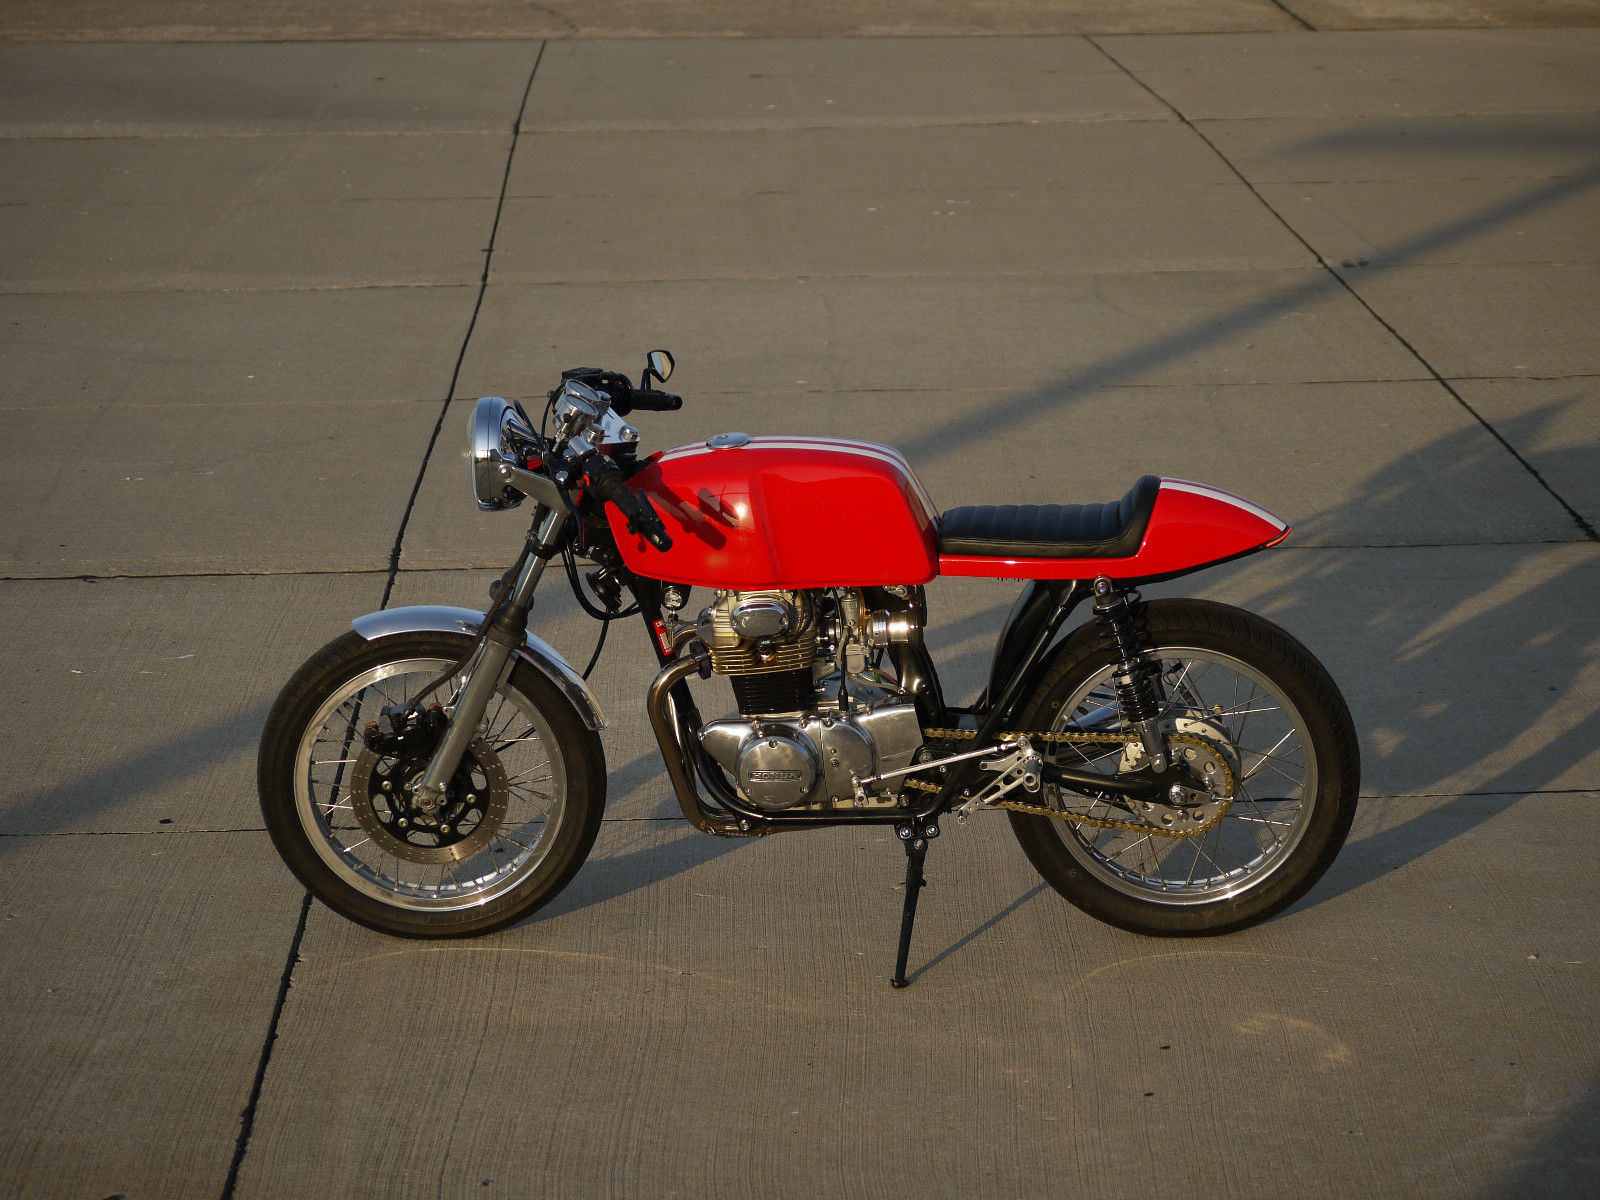 Honda CB350 Cafe Racer 7 5 2 1 Collage